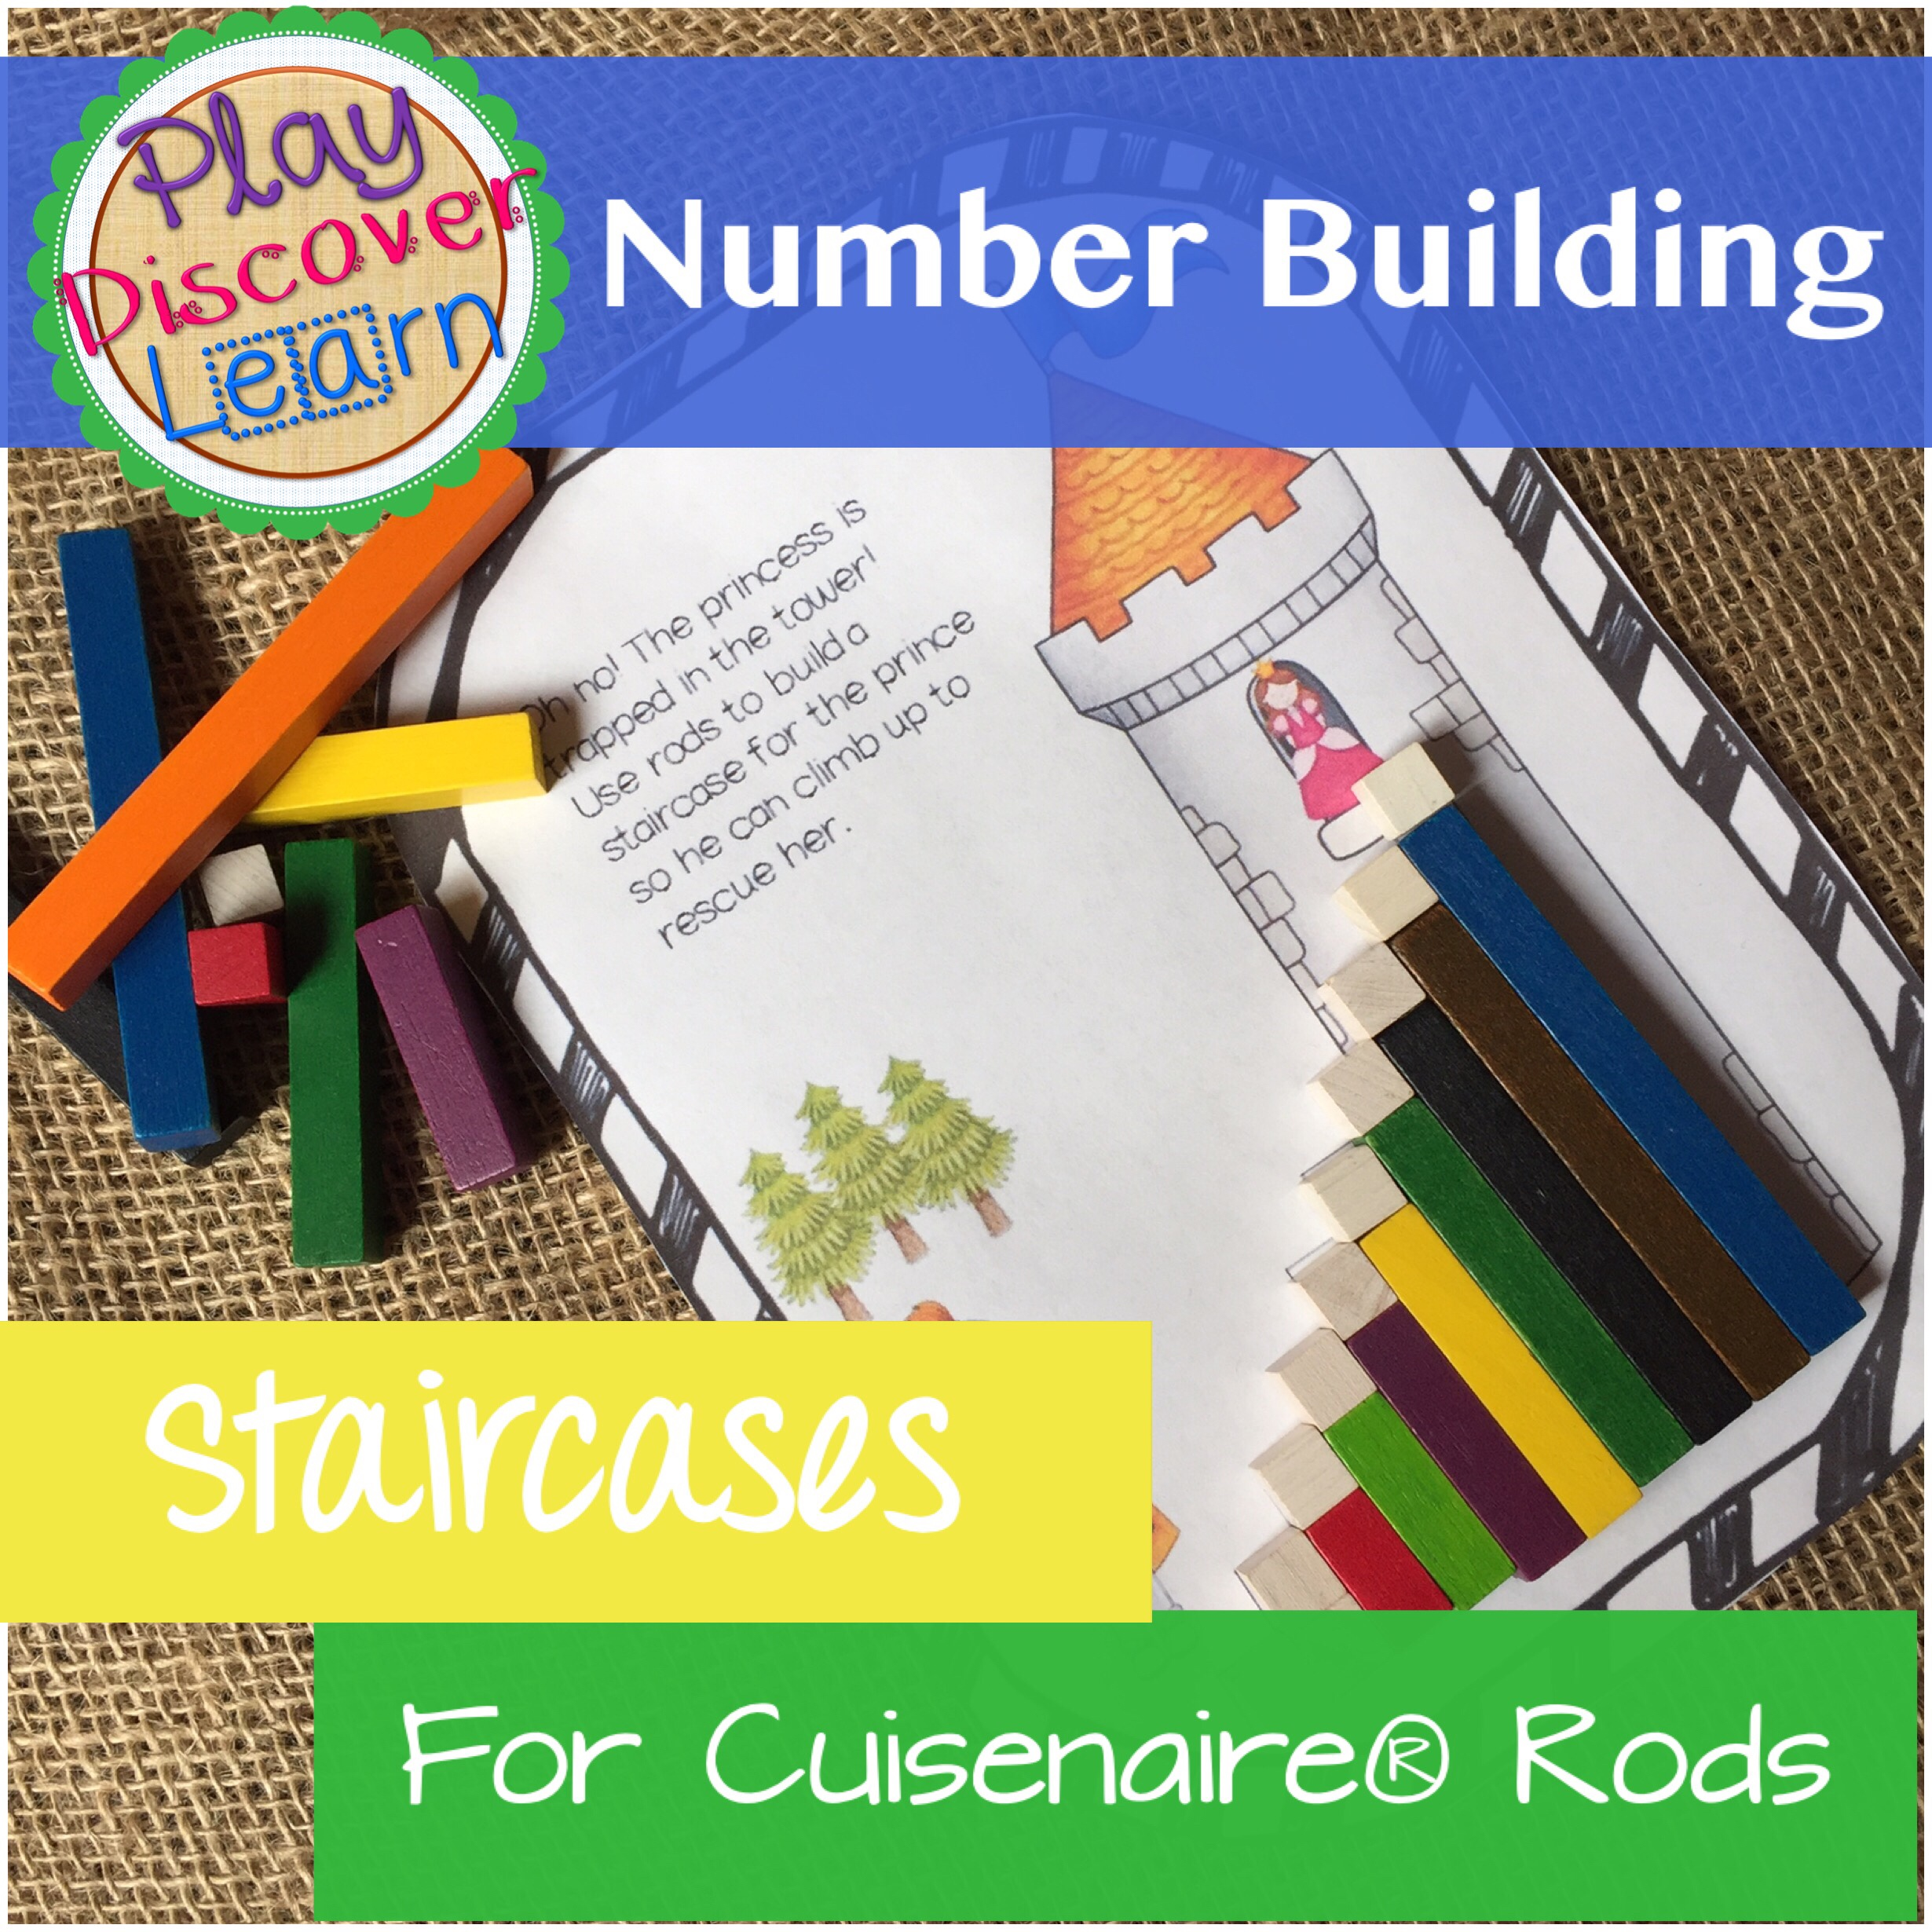 number building staircases